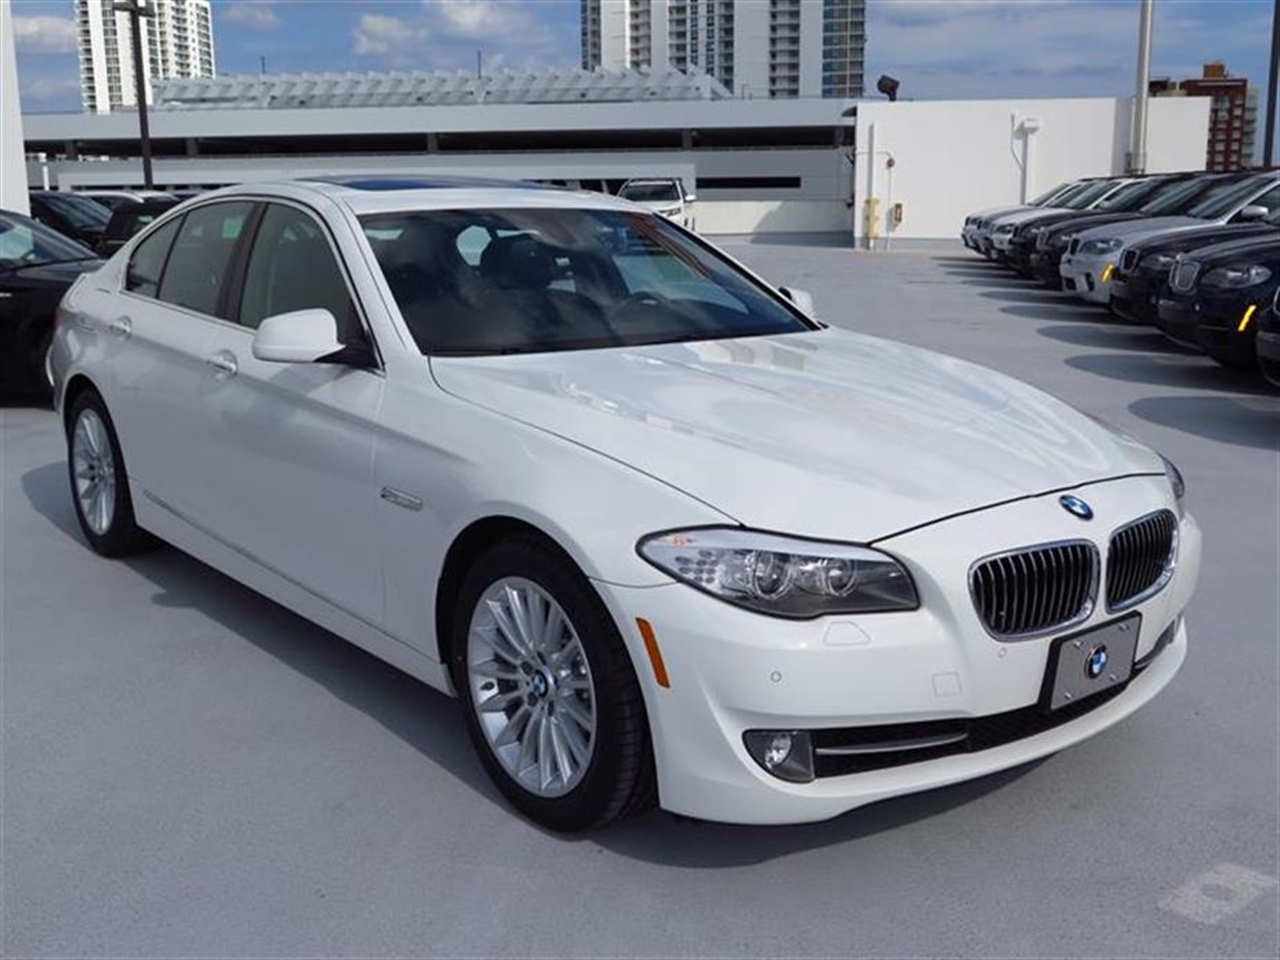 2013 BMW 5 SERIES 4dr Sdn 535i xDrive AWD 29465 miles 10-way power-adjustable front bucket seats